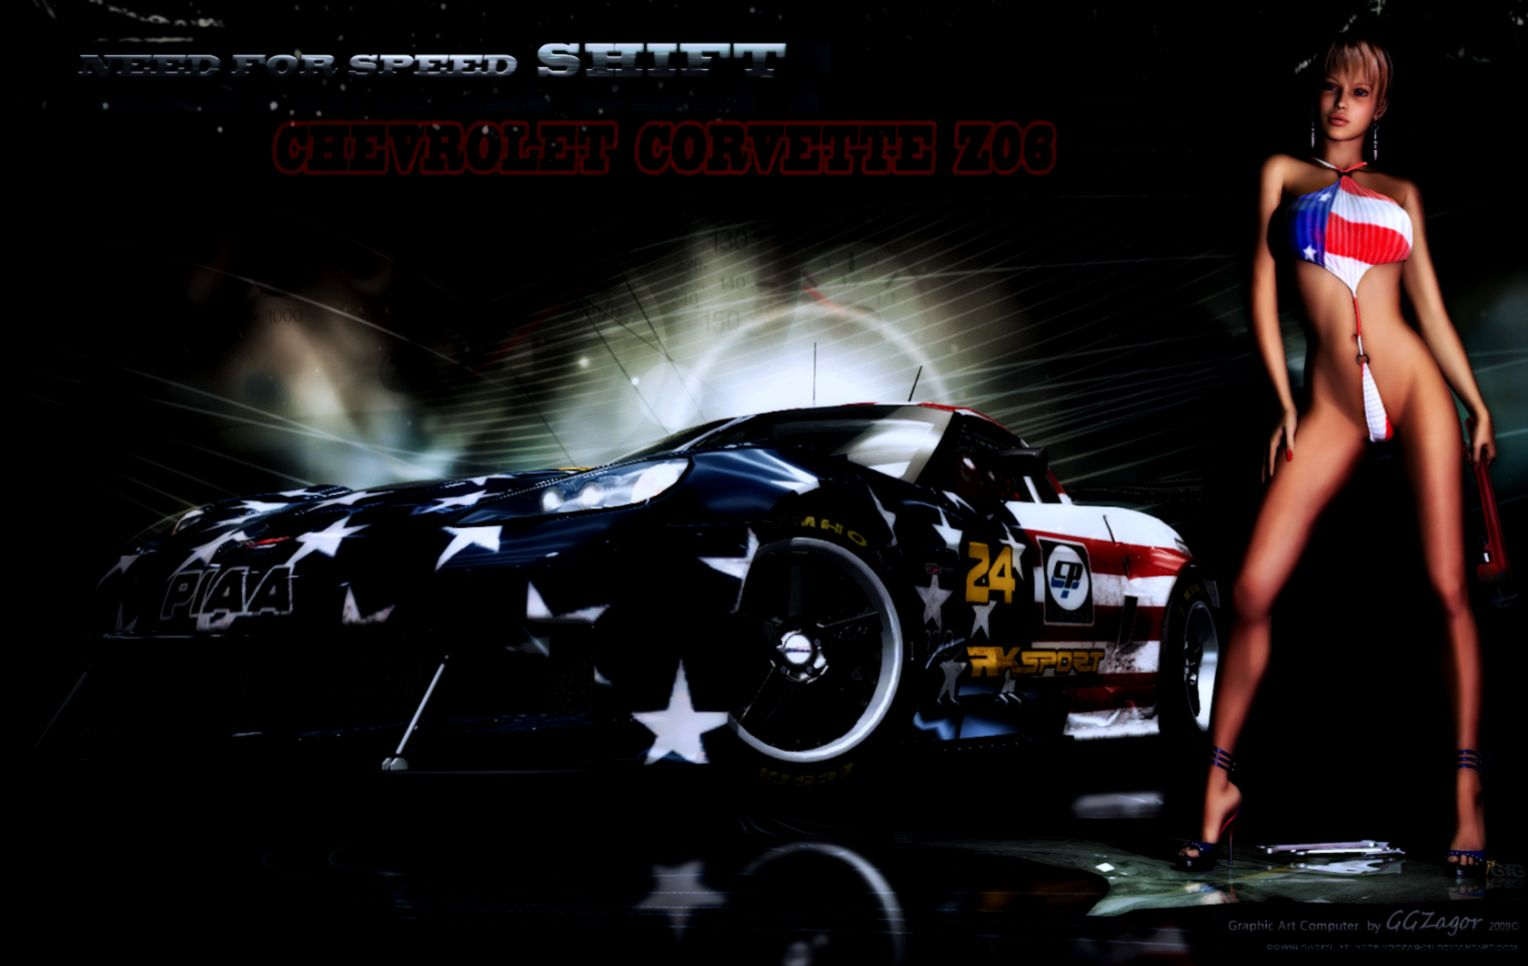 Need for speed wallpaper download free all hd wallpapers view original size voltagebd Choice Image